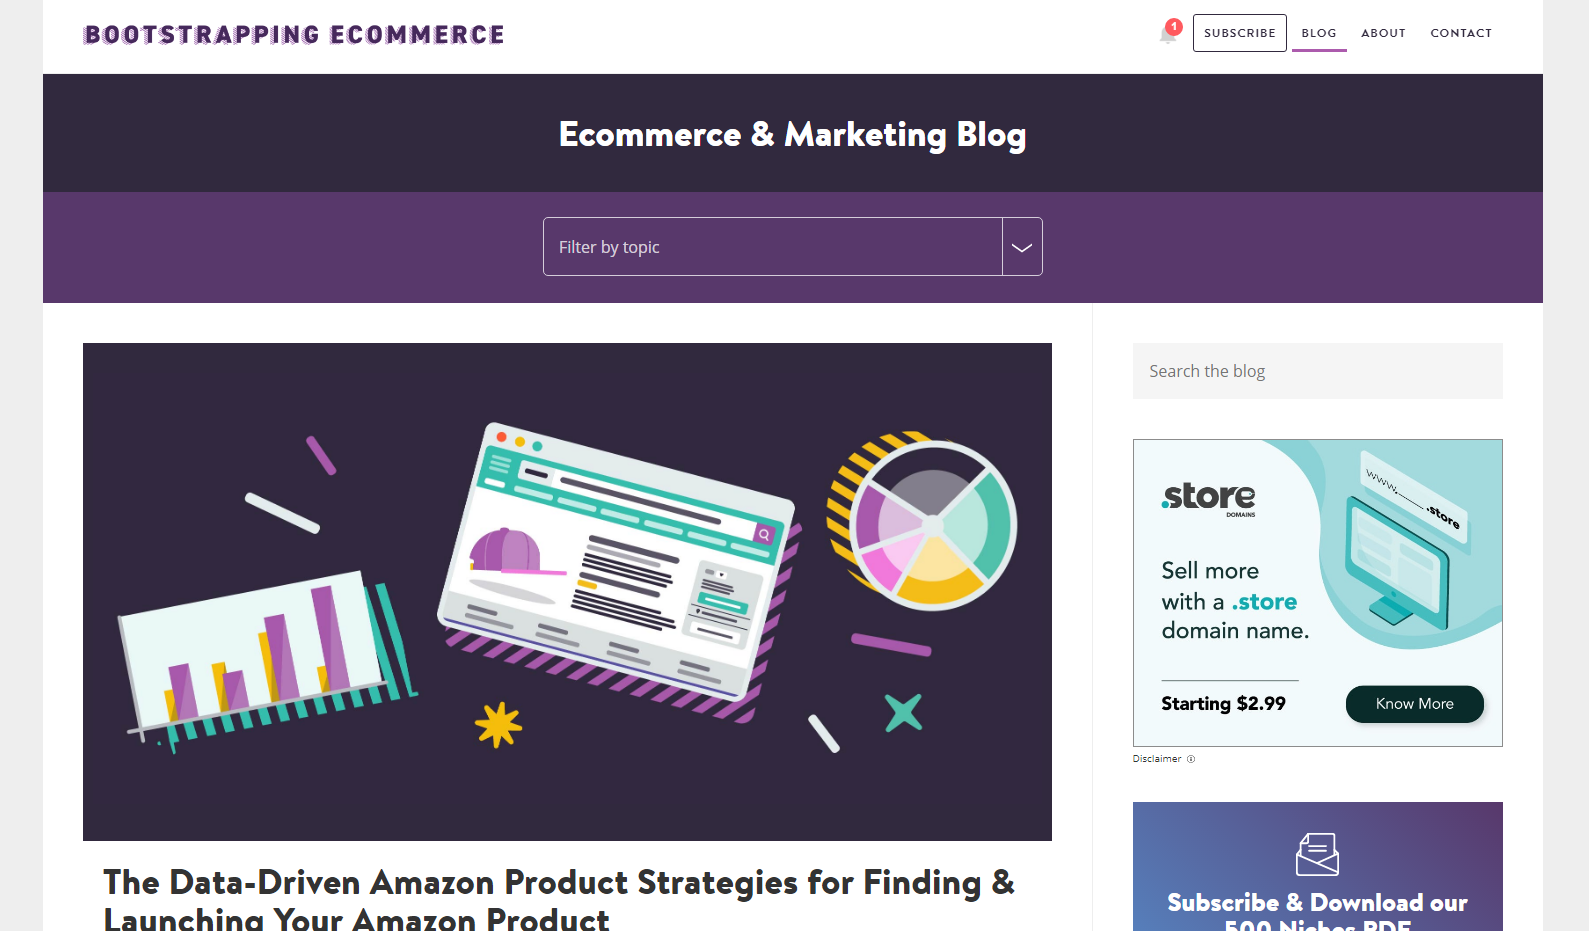 Bootstrapping eCommerce Blog